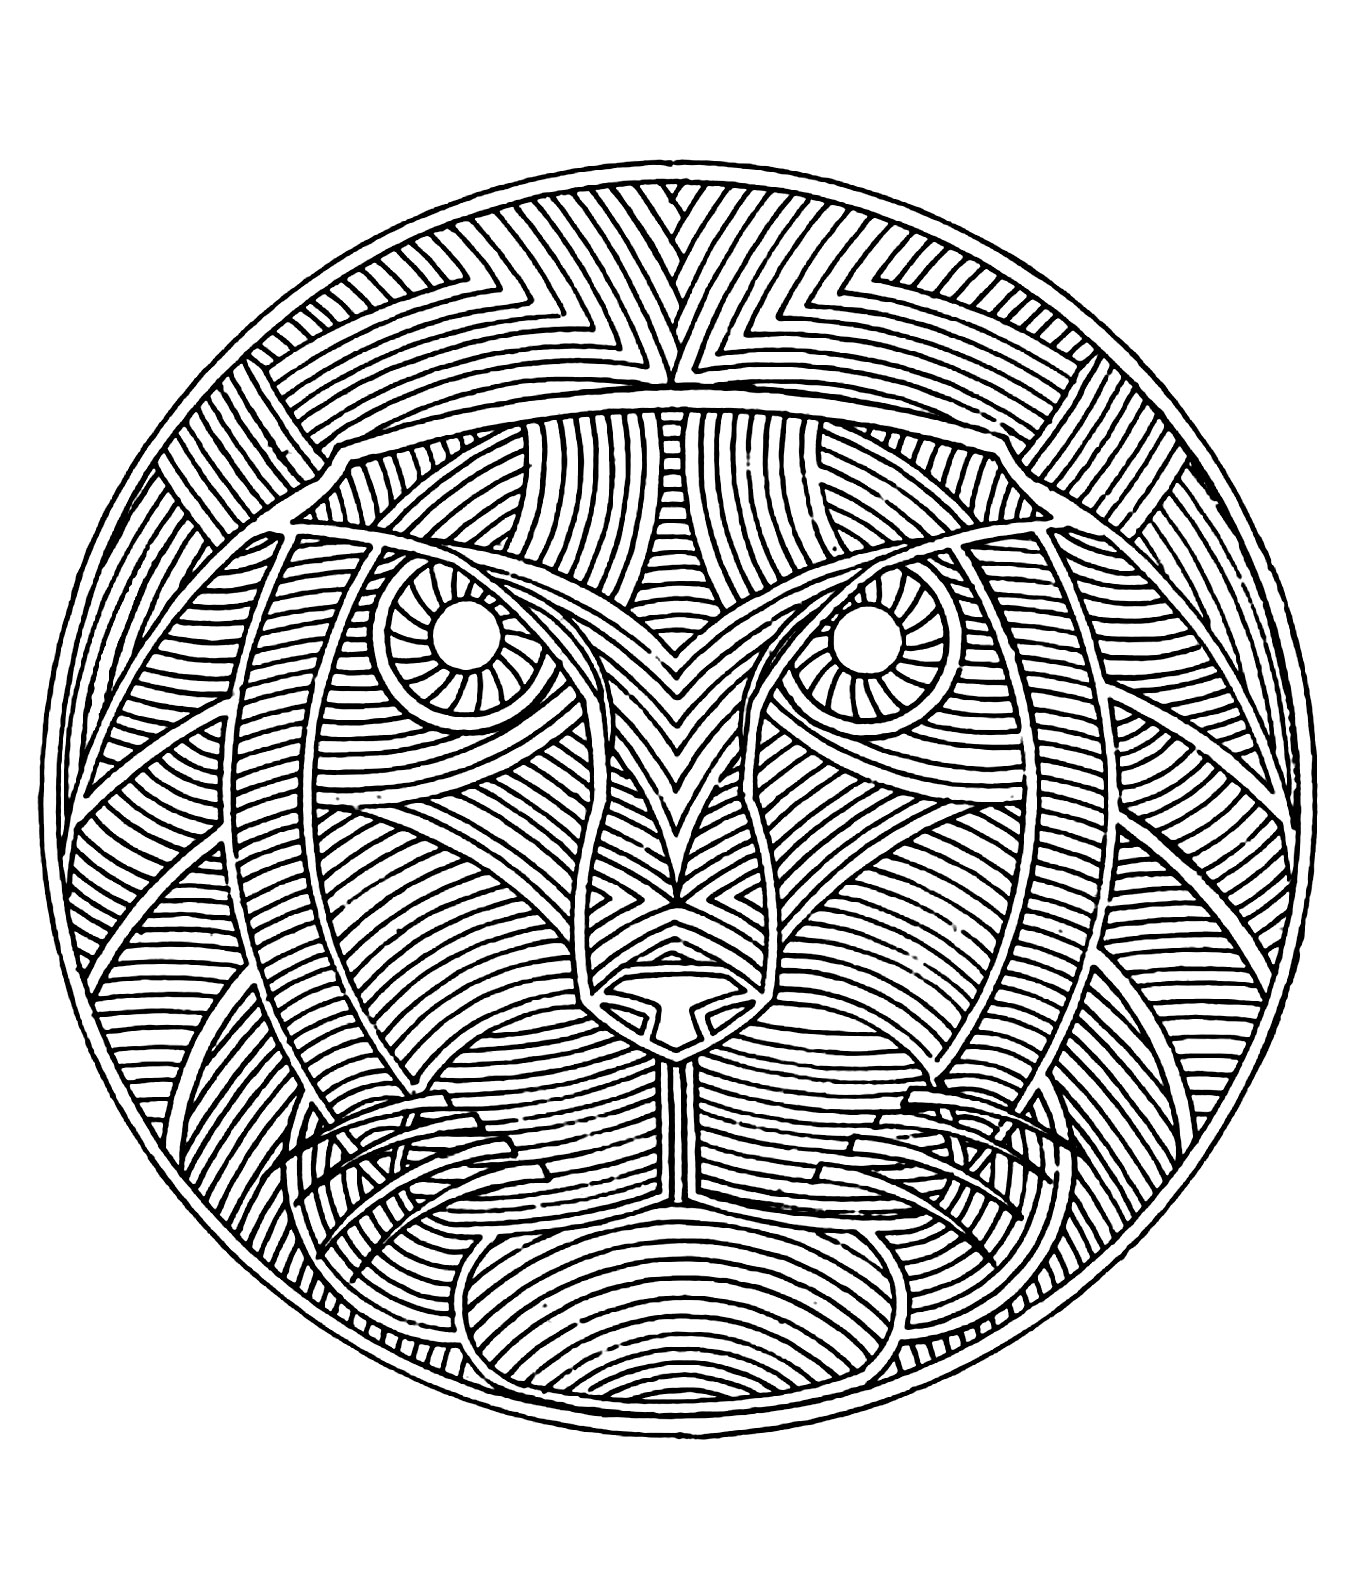 Coloring pages for adults mandala - Free Mandala Difficult Adult To Print Lion Image With Lion From The Gallery